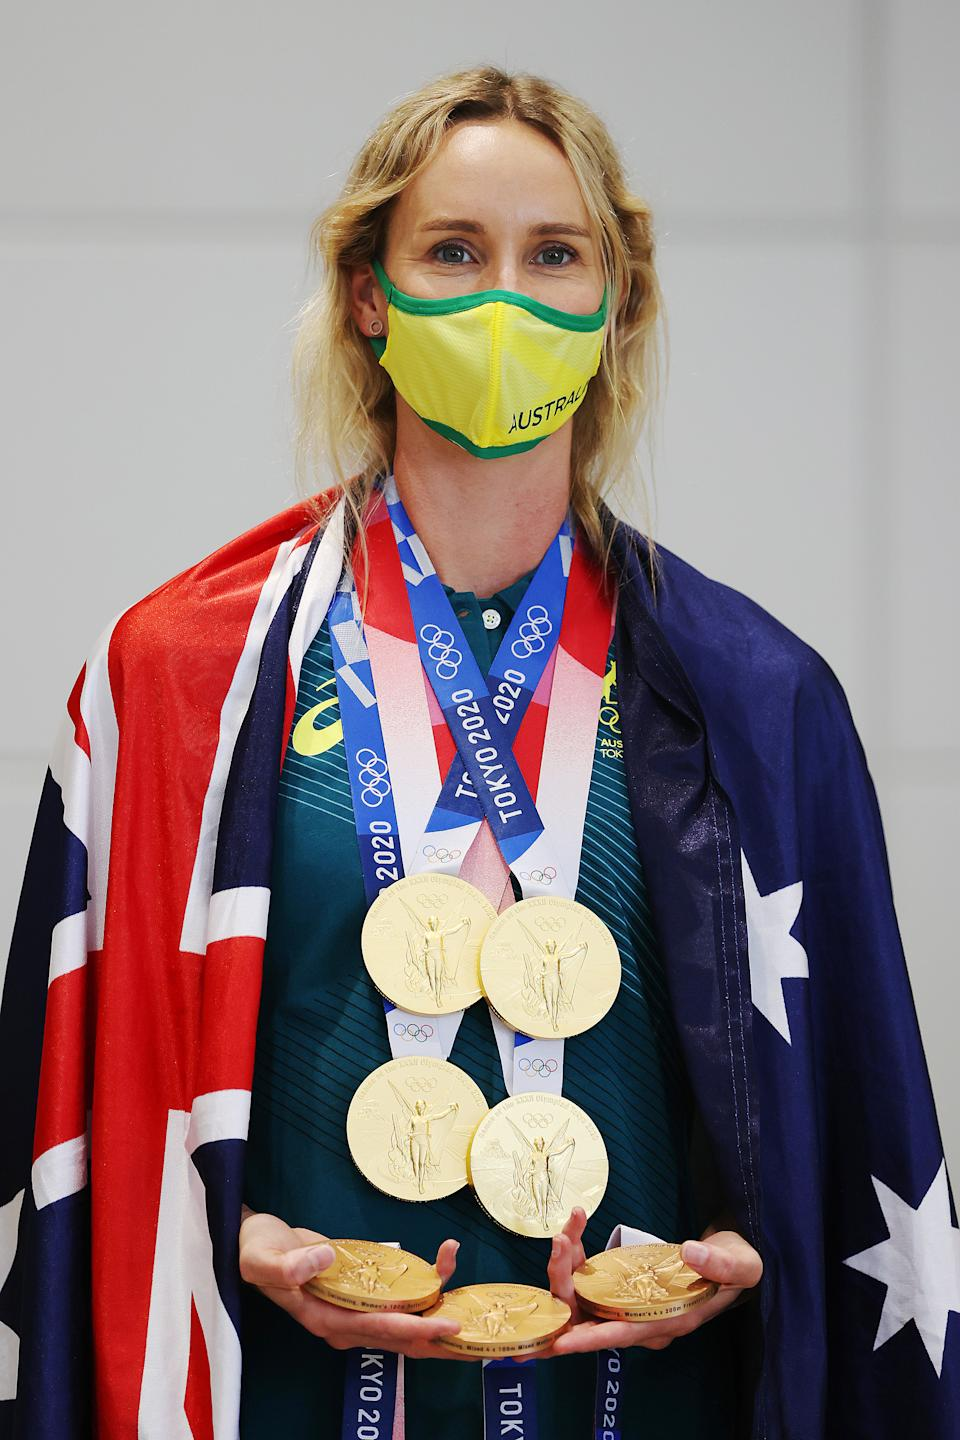 <p>Emma McKeon of Team Australia poses for a photo with her seven Olympics medals after the Australian Swimming Medallist press conference on day ten of the Tokyo Olympic Games on August 02, 2021 in Tokyo, Japan. (Photo by James Chance/Getty Images)</p>